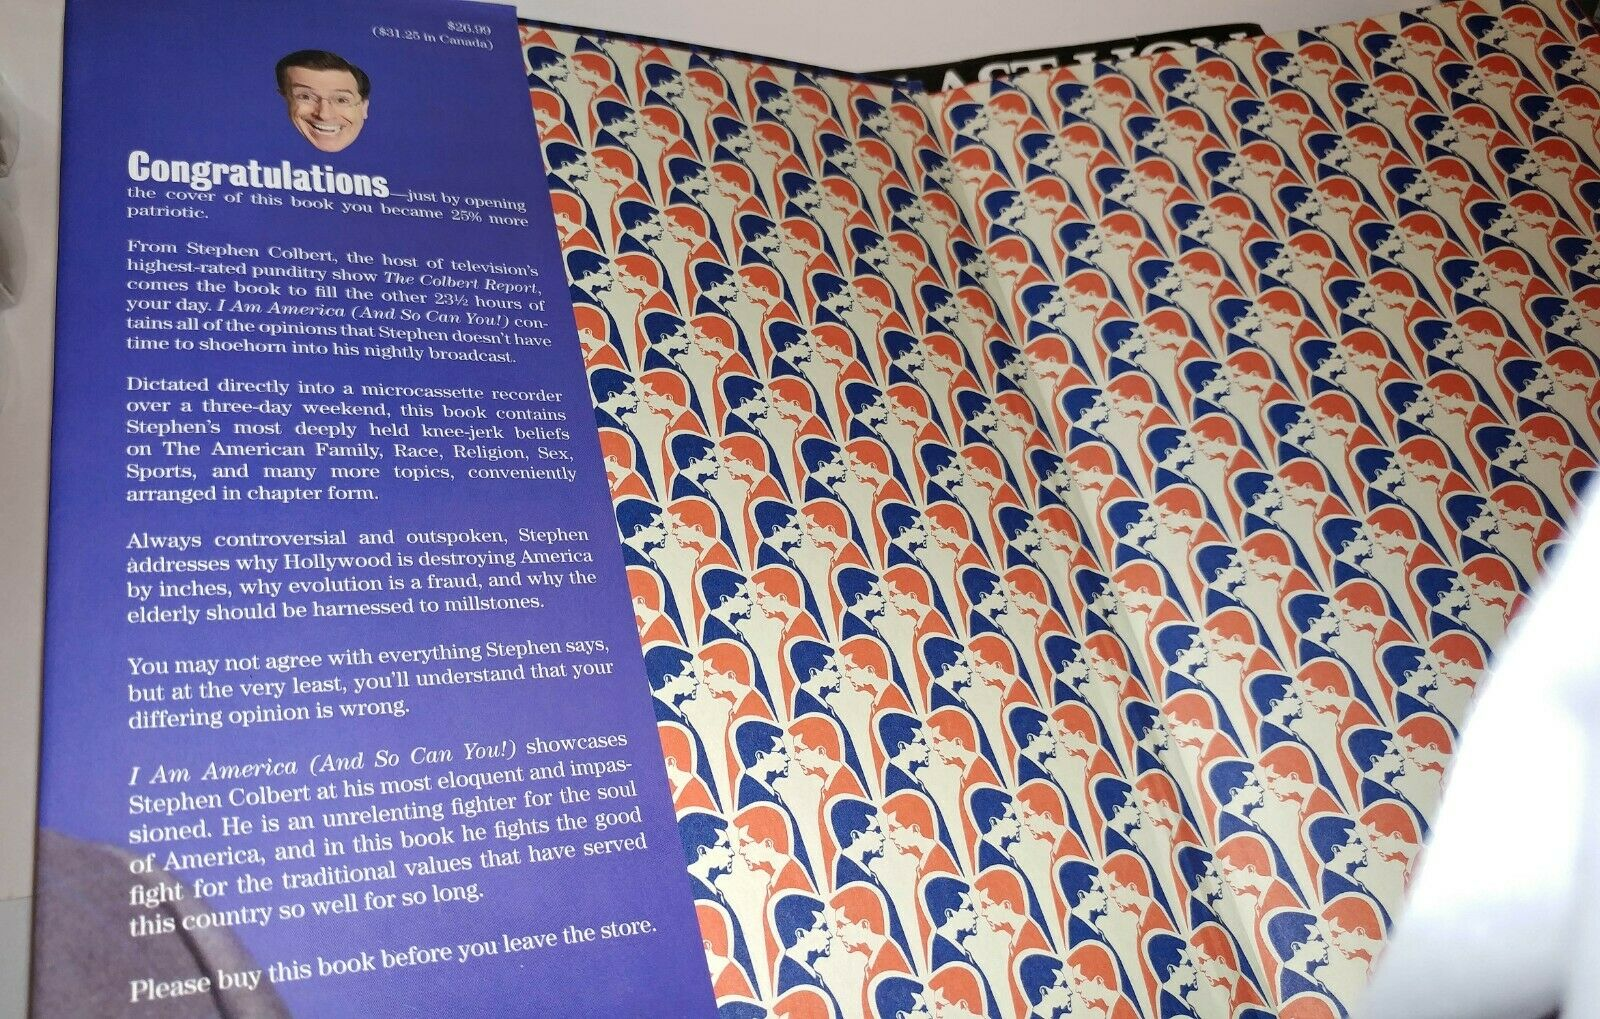 Stephen Colbert - I Am America And So Can You Hardcover First Edition. - $9.95